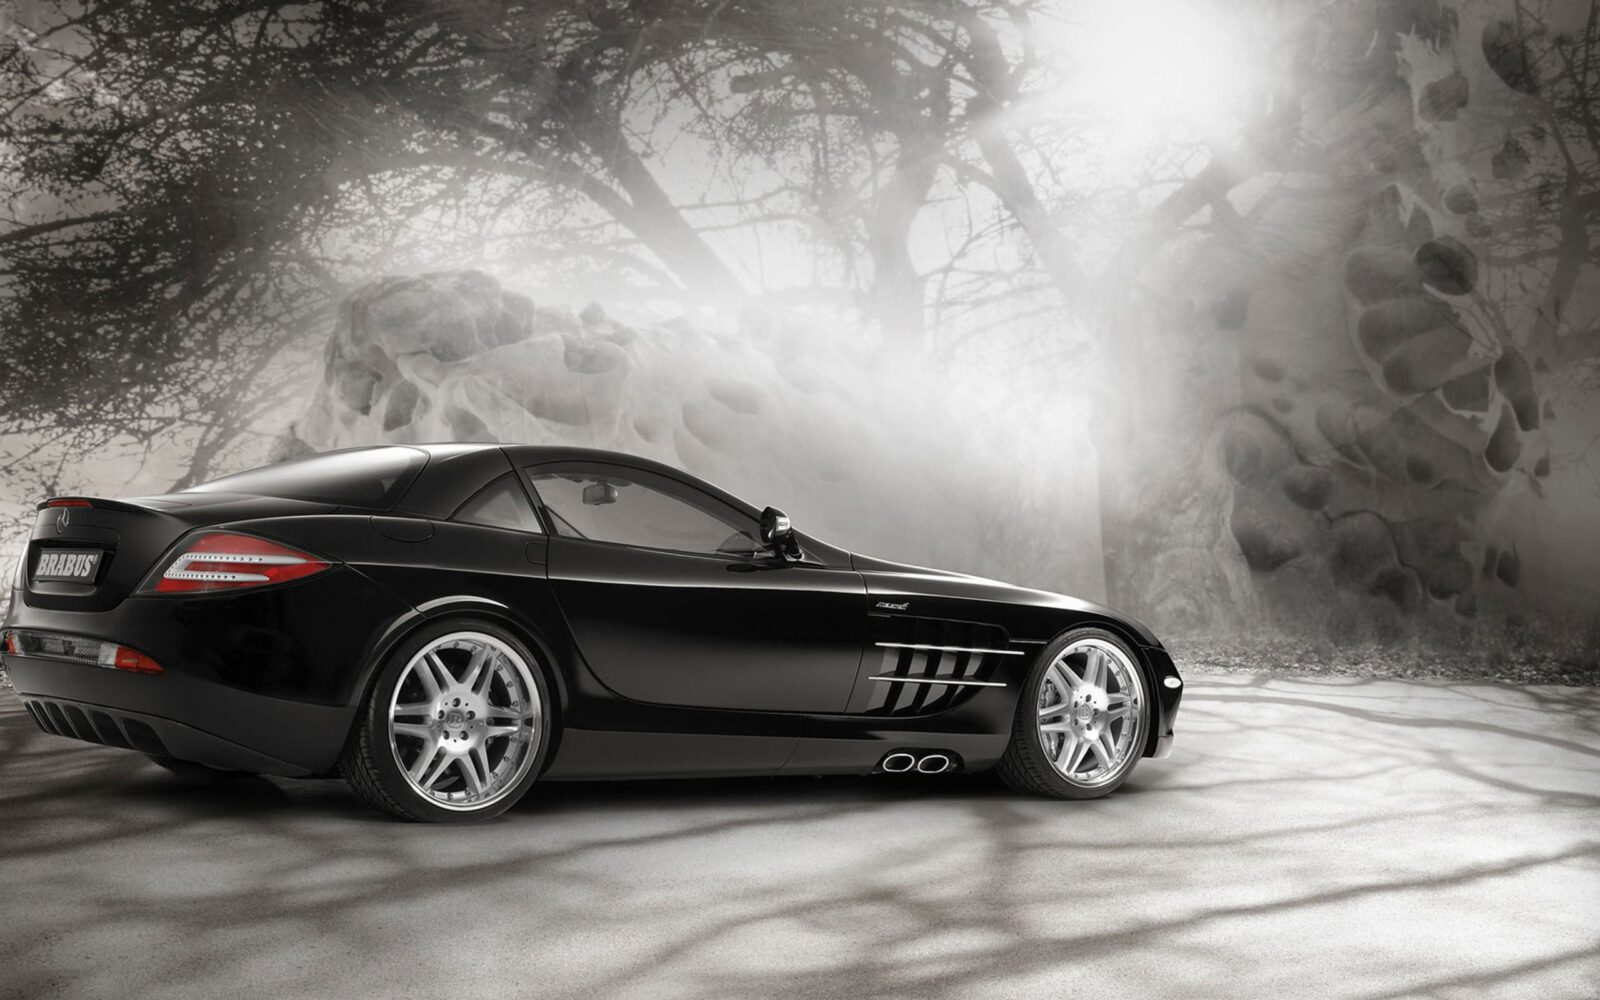 Mercedes Slr Mclaren on screensavers of porsche 911 cabriolet